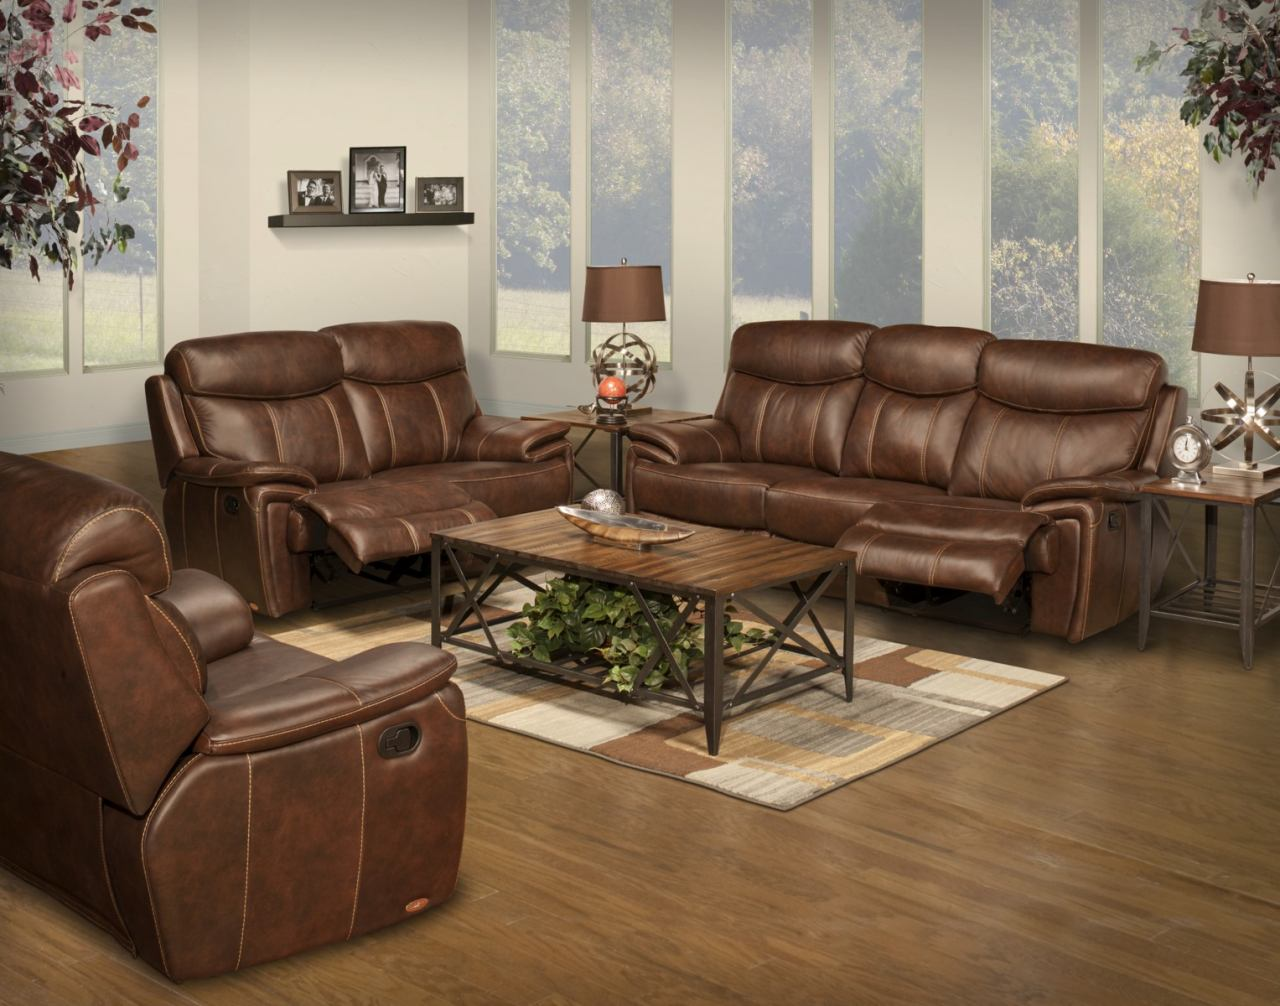 New classic aria 2 piece living room set in matte brown for 3 piece living room set cheap